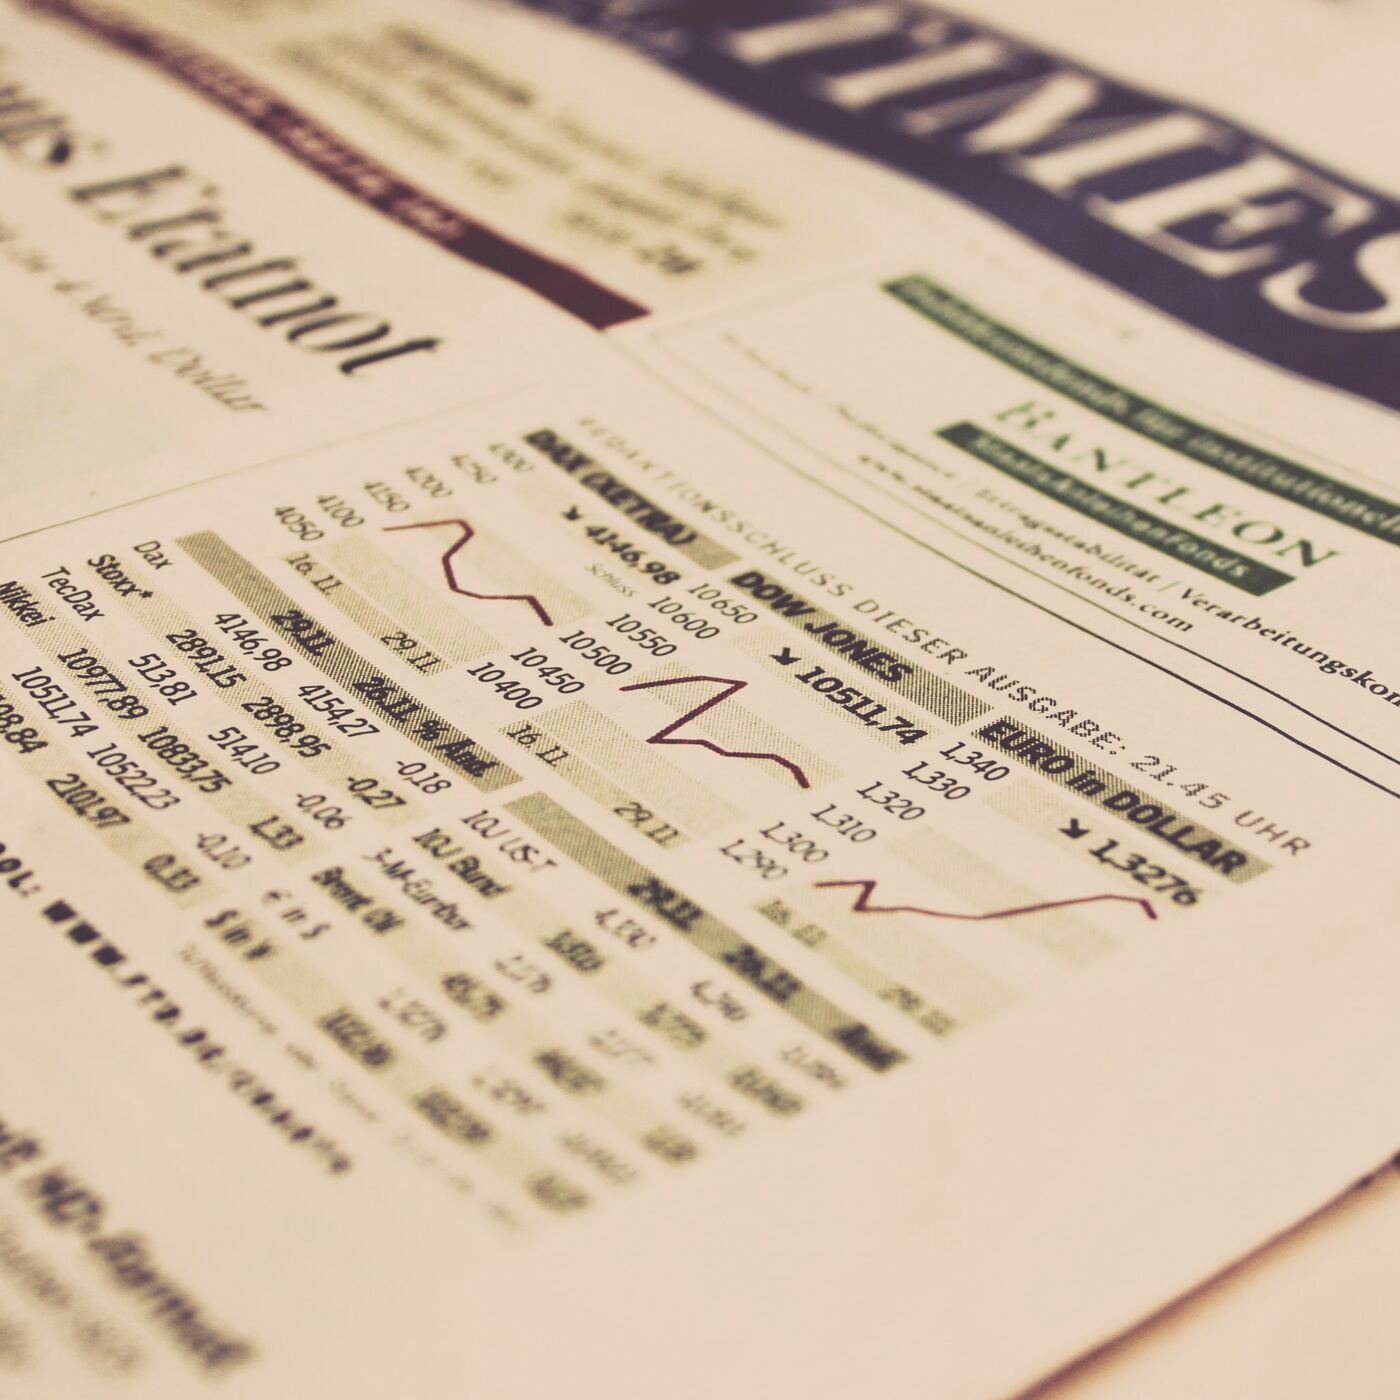 #59. Stock options are risky business. Here's when they can actually make sense.